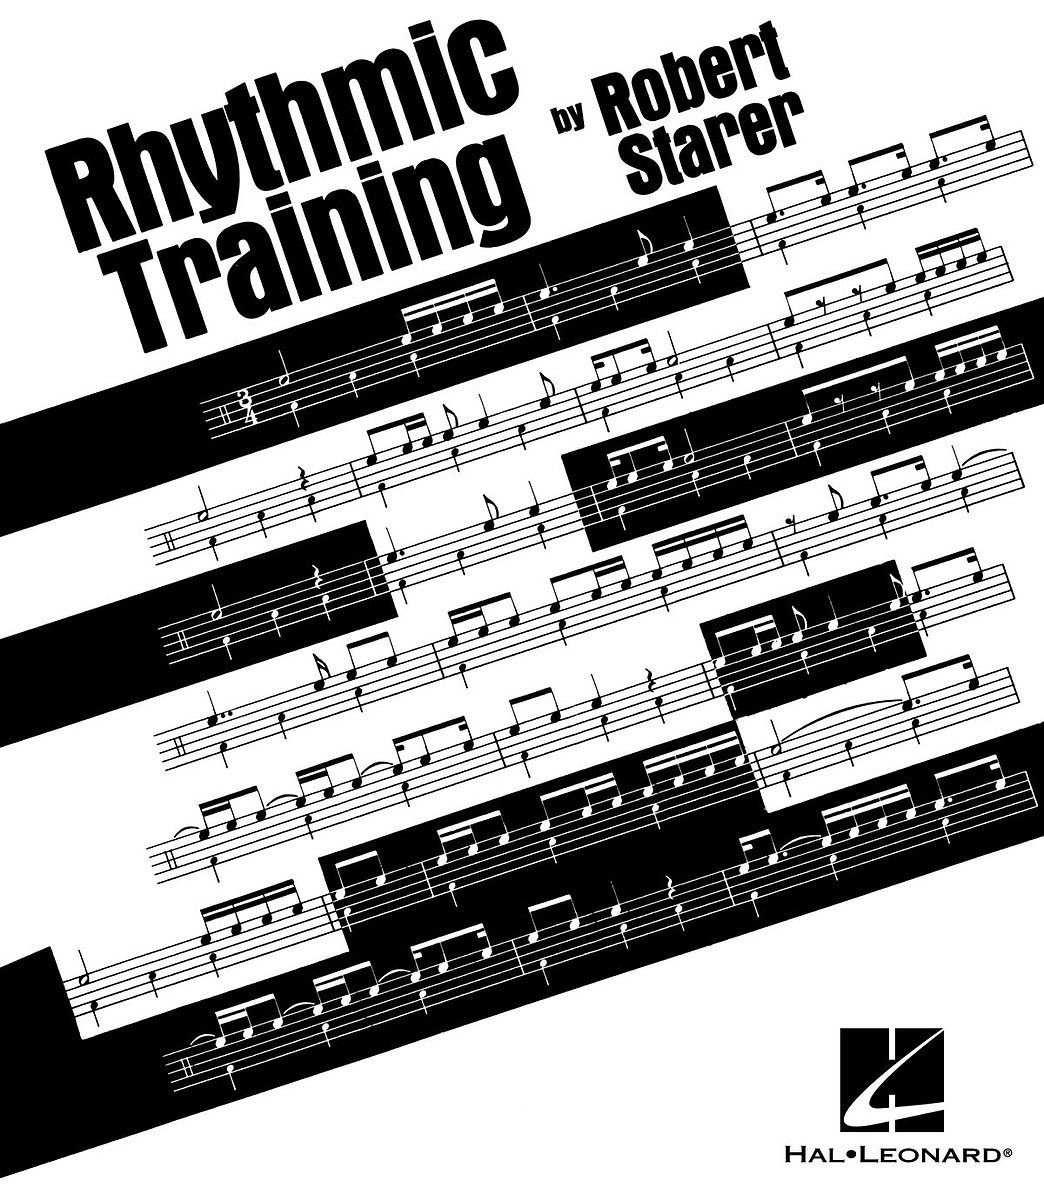 Rhythmic Training Instructional Book by Robert Starer